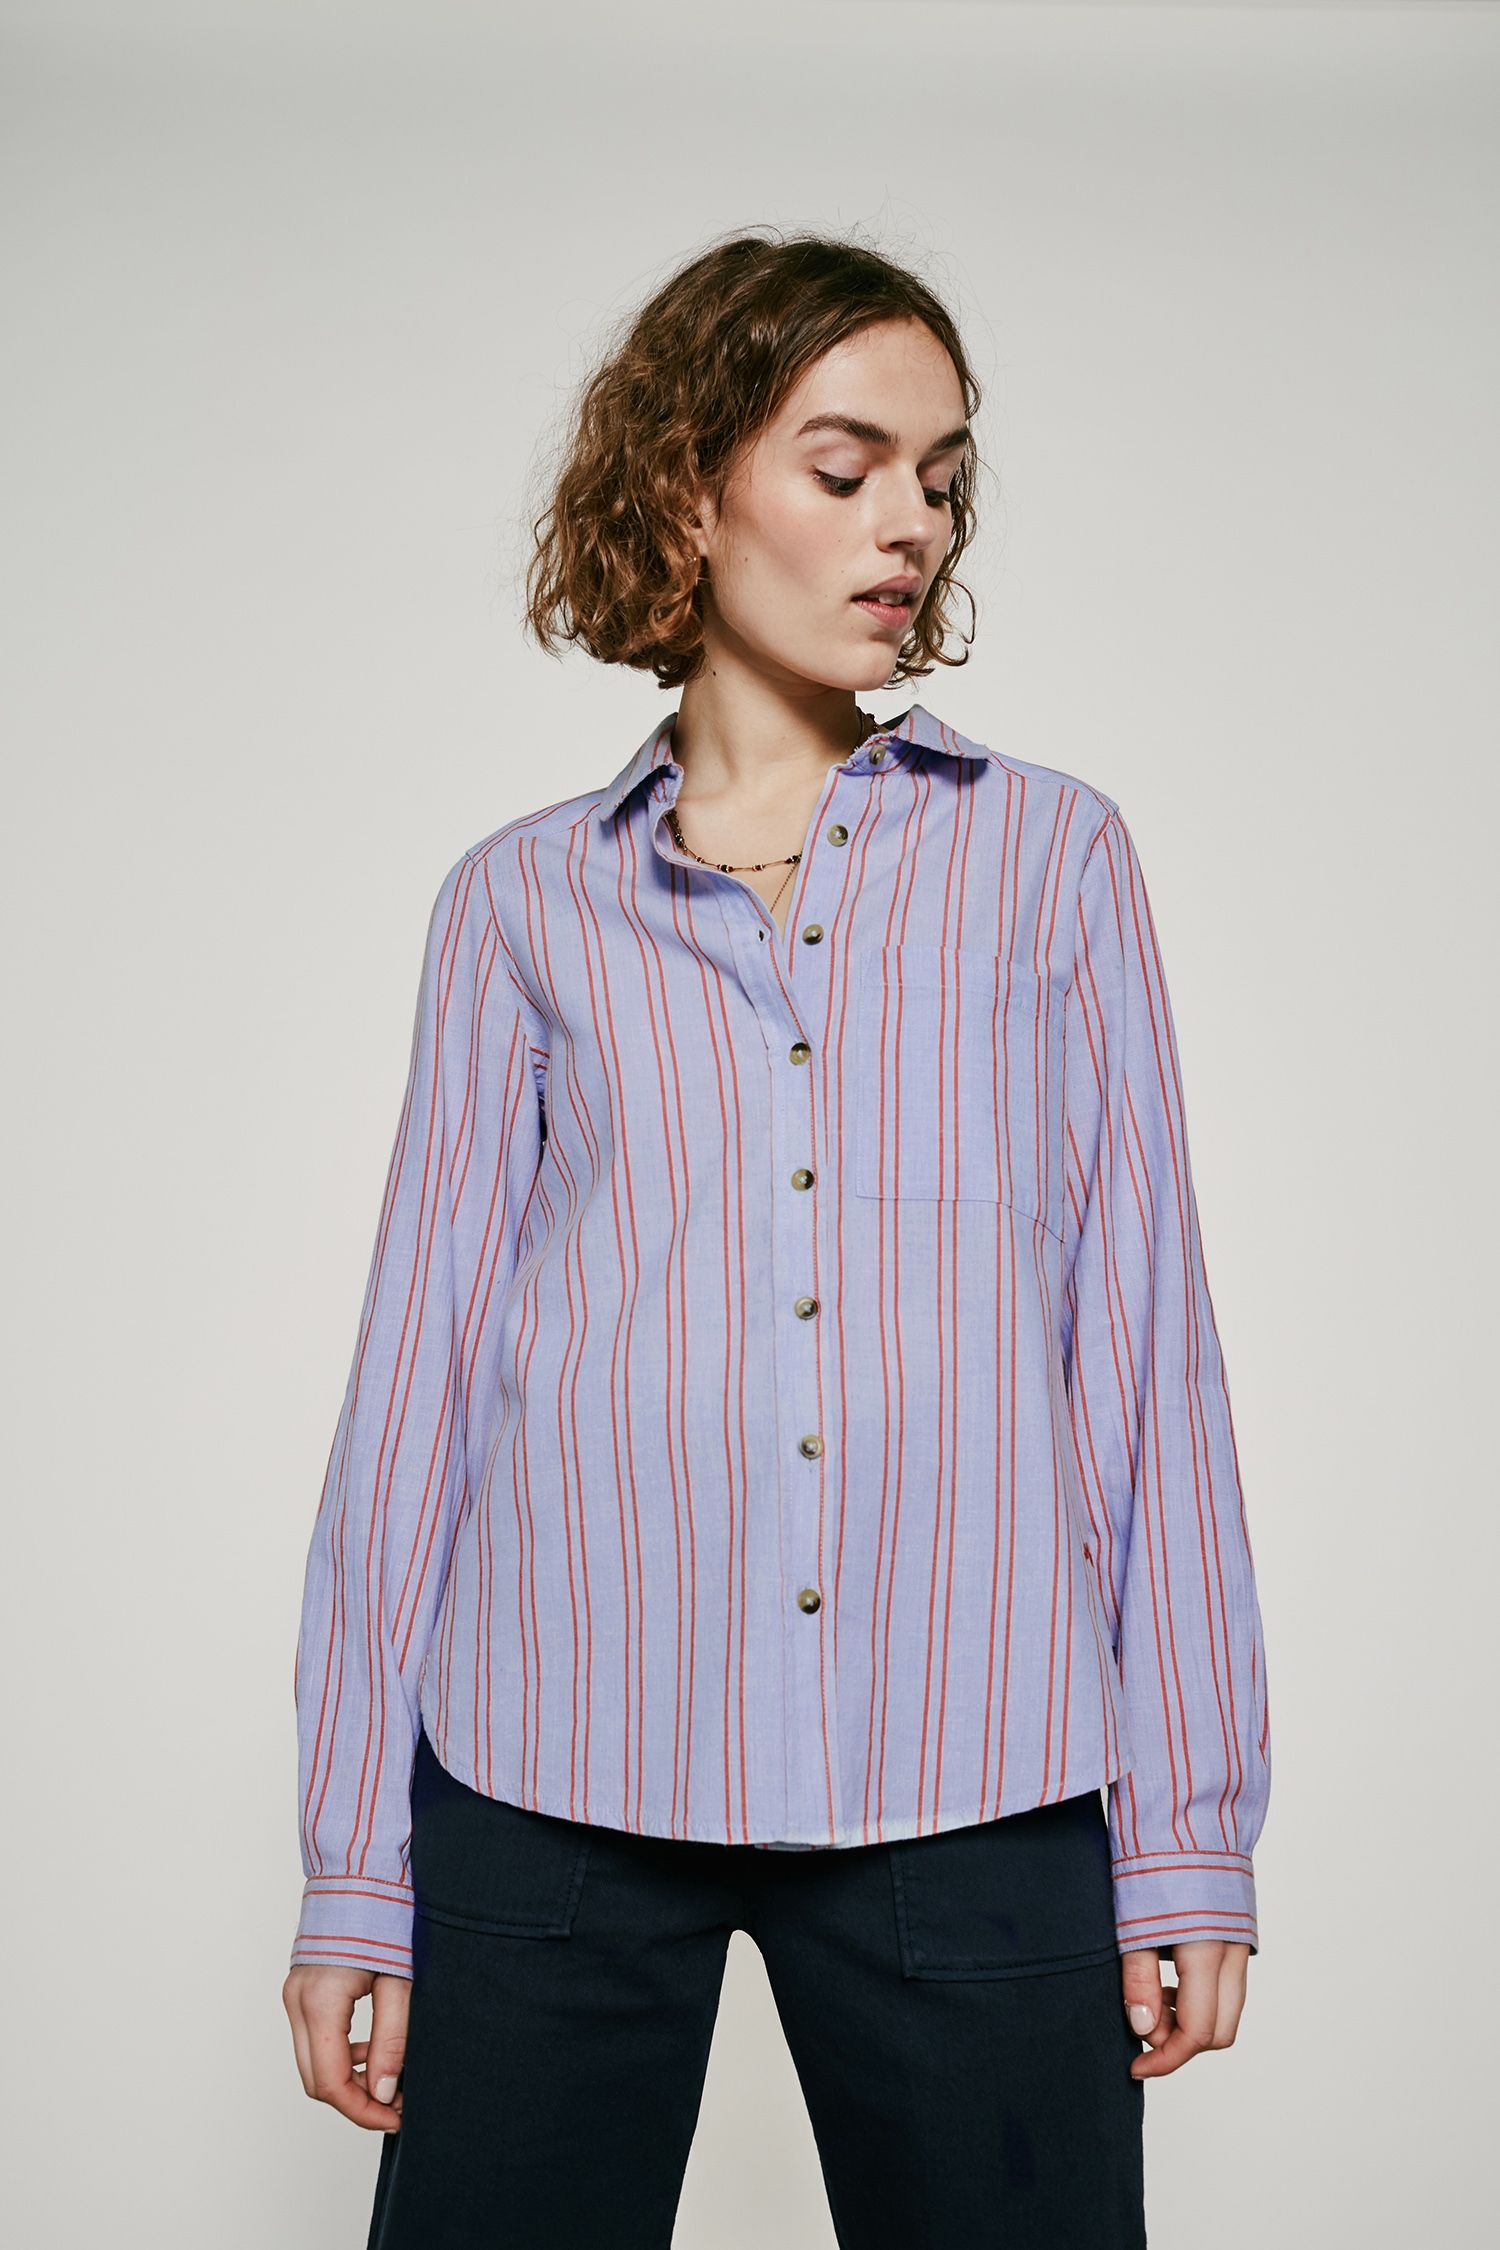 Image 3 du produit Calcul Stripes Shirt